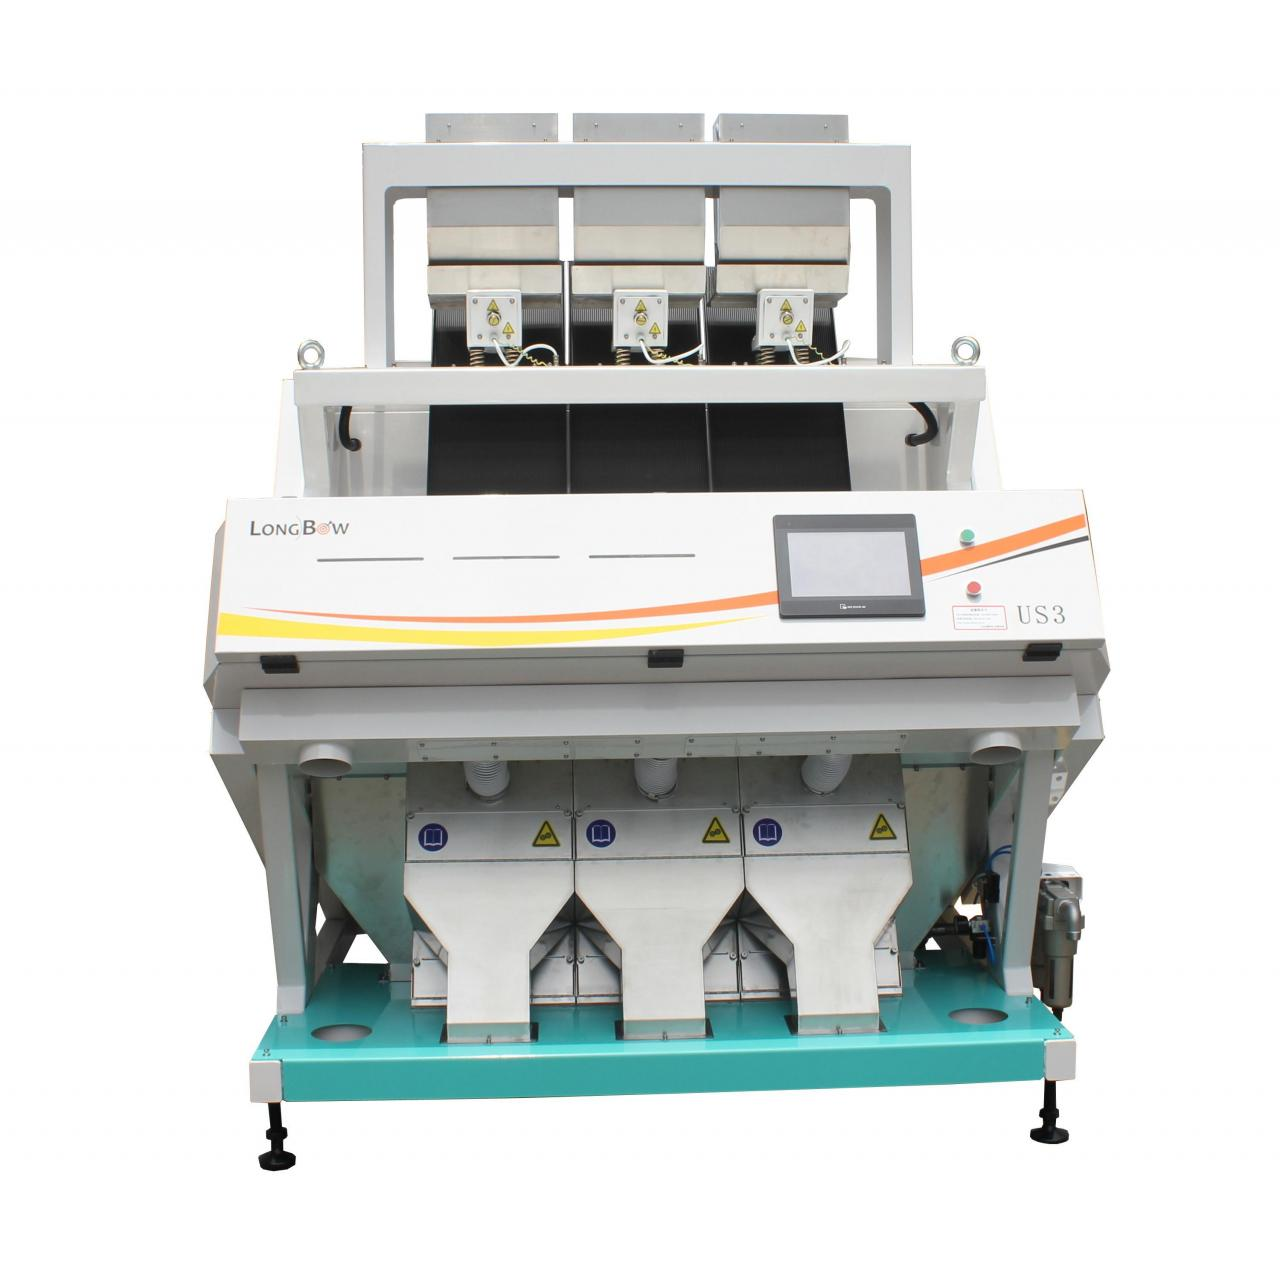 China US3 Rice Color Sorter wholesale